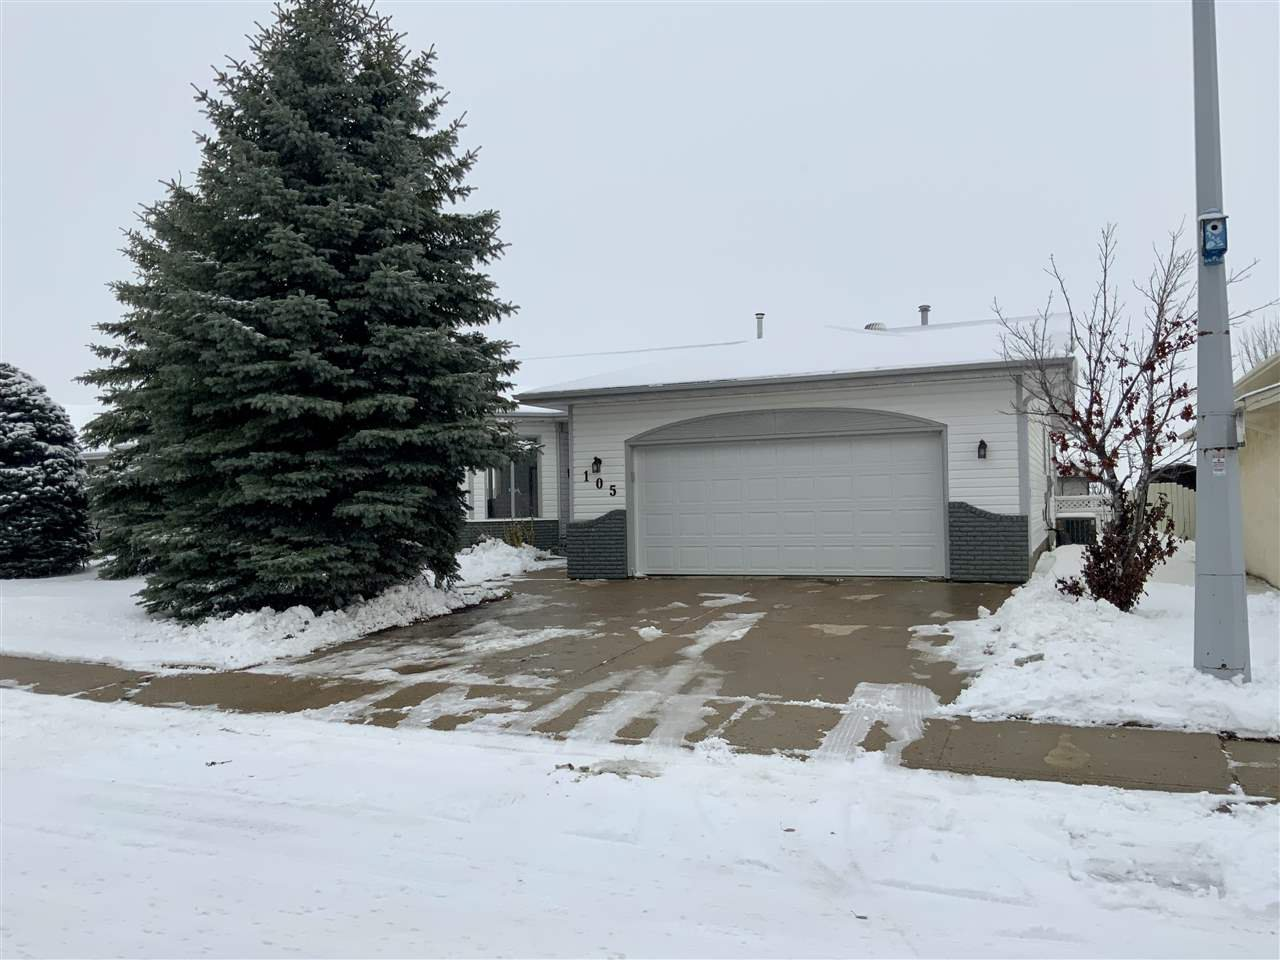 Main Photo: 105 Applewood Street: Wetaskiwin House for sale : MLS®# E4220695